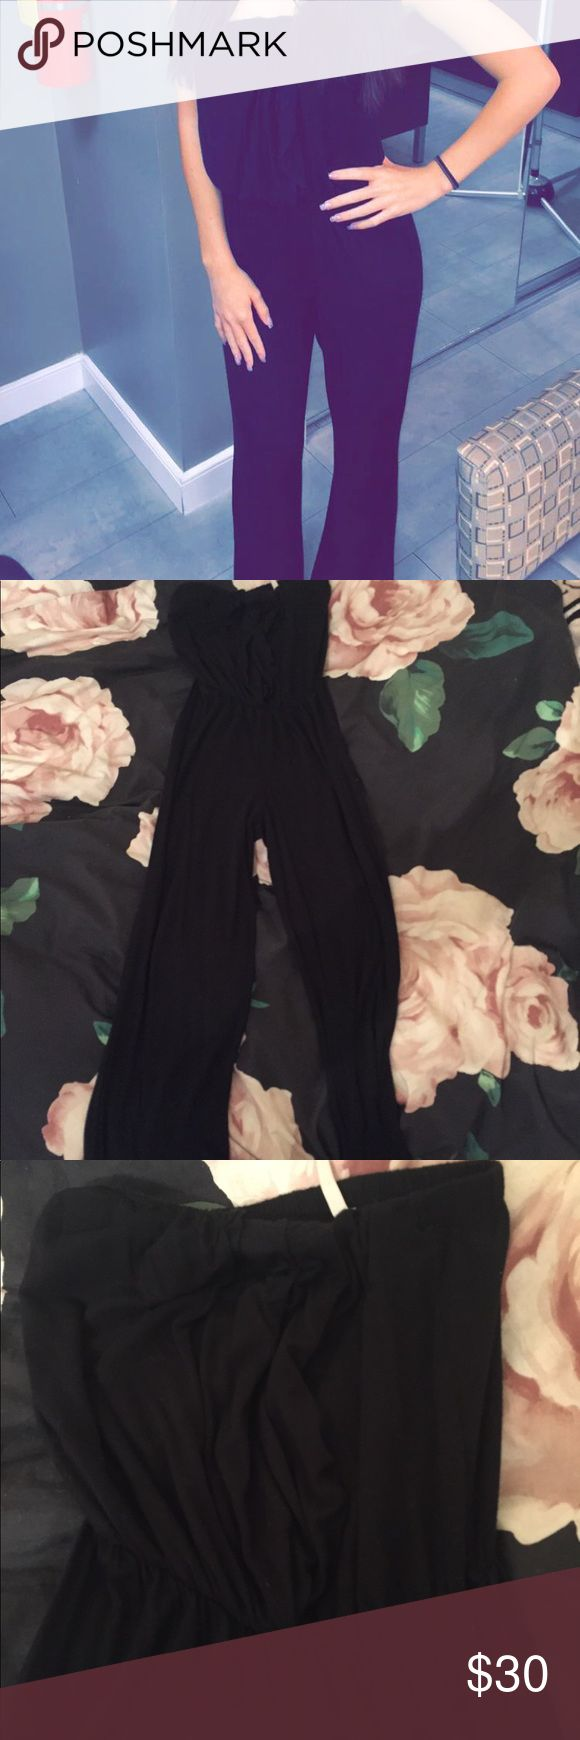 Black Strapless Jumpsuit Black strapless jumpsuit. A bit of a stretchy comfy material. Wider leg. Size XS. Great condition. I'm 5'0 and it went to about the floor on me Dresses